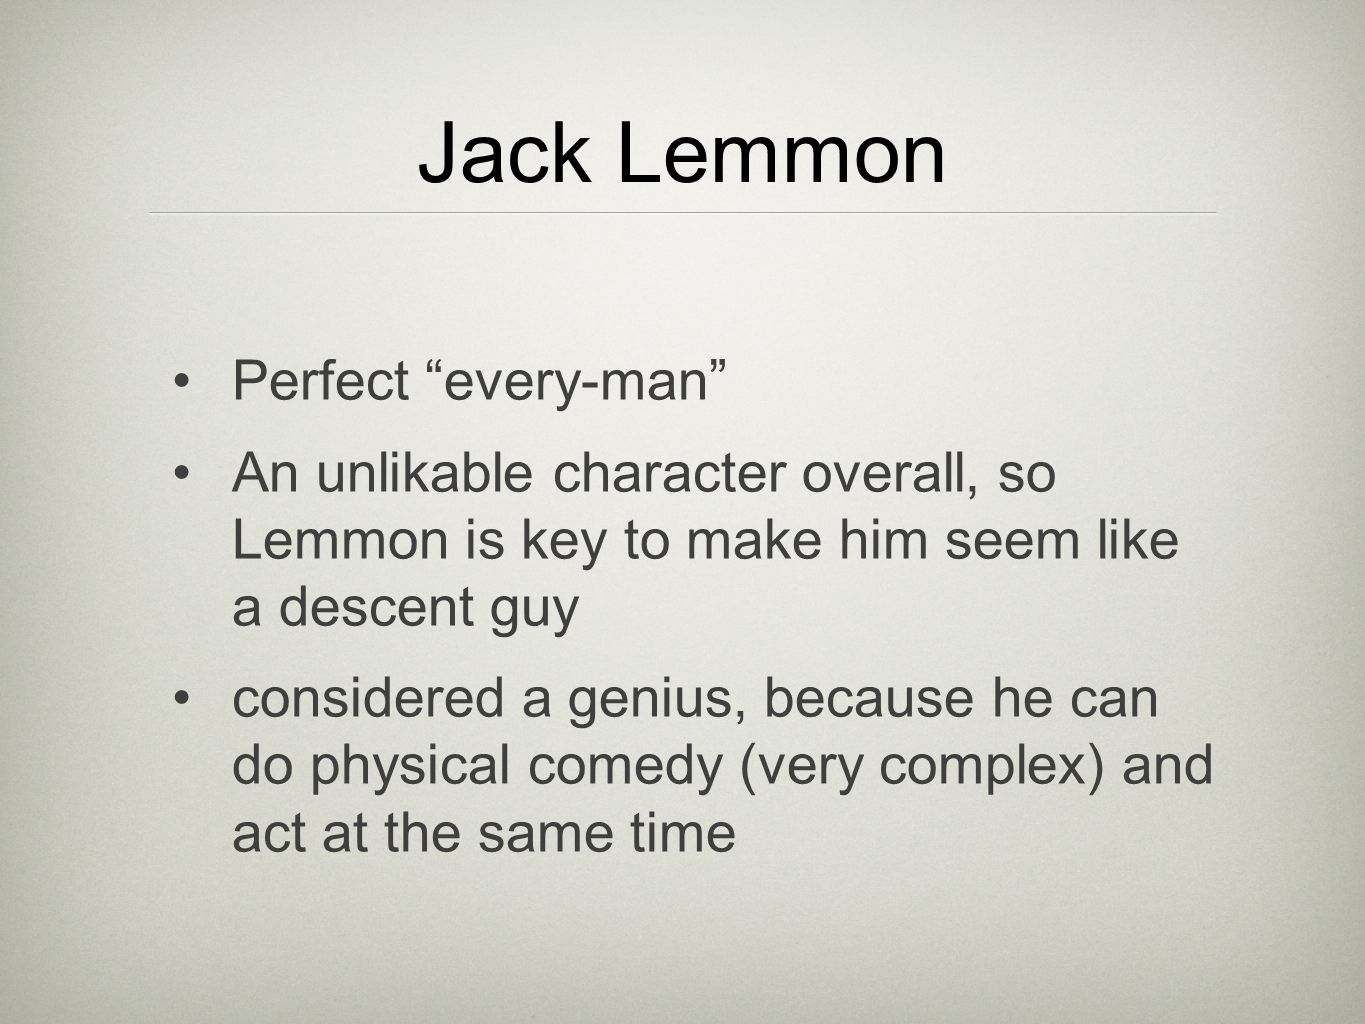 Jack Lemmon Perfect every-man An unlikable character overall, so Lemmon is key to make him seem like a descent guy considered a genius, because he can do physical comedy (very complex) and act at the same time